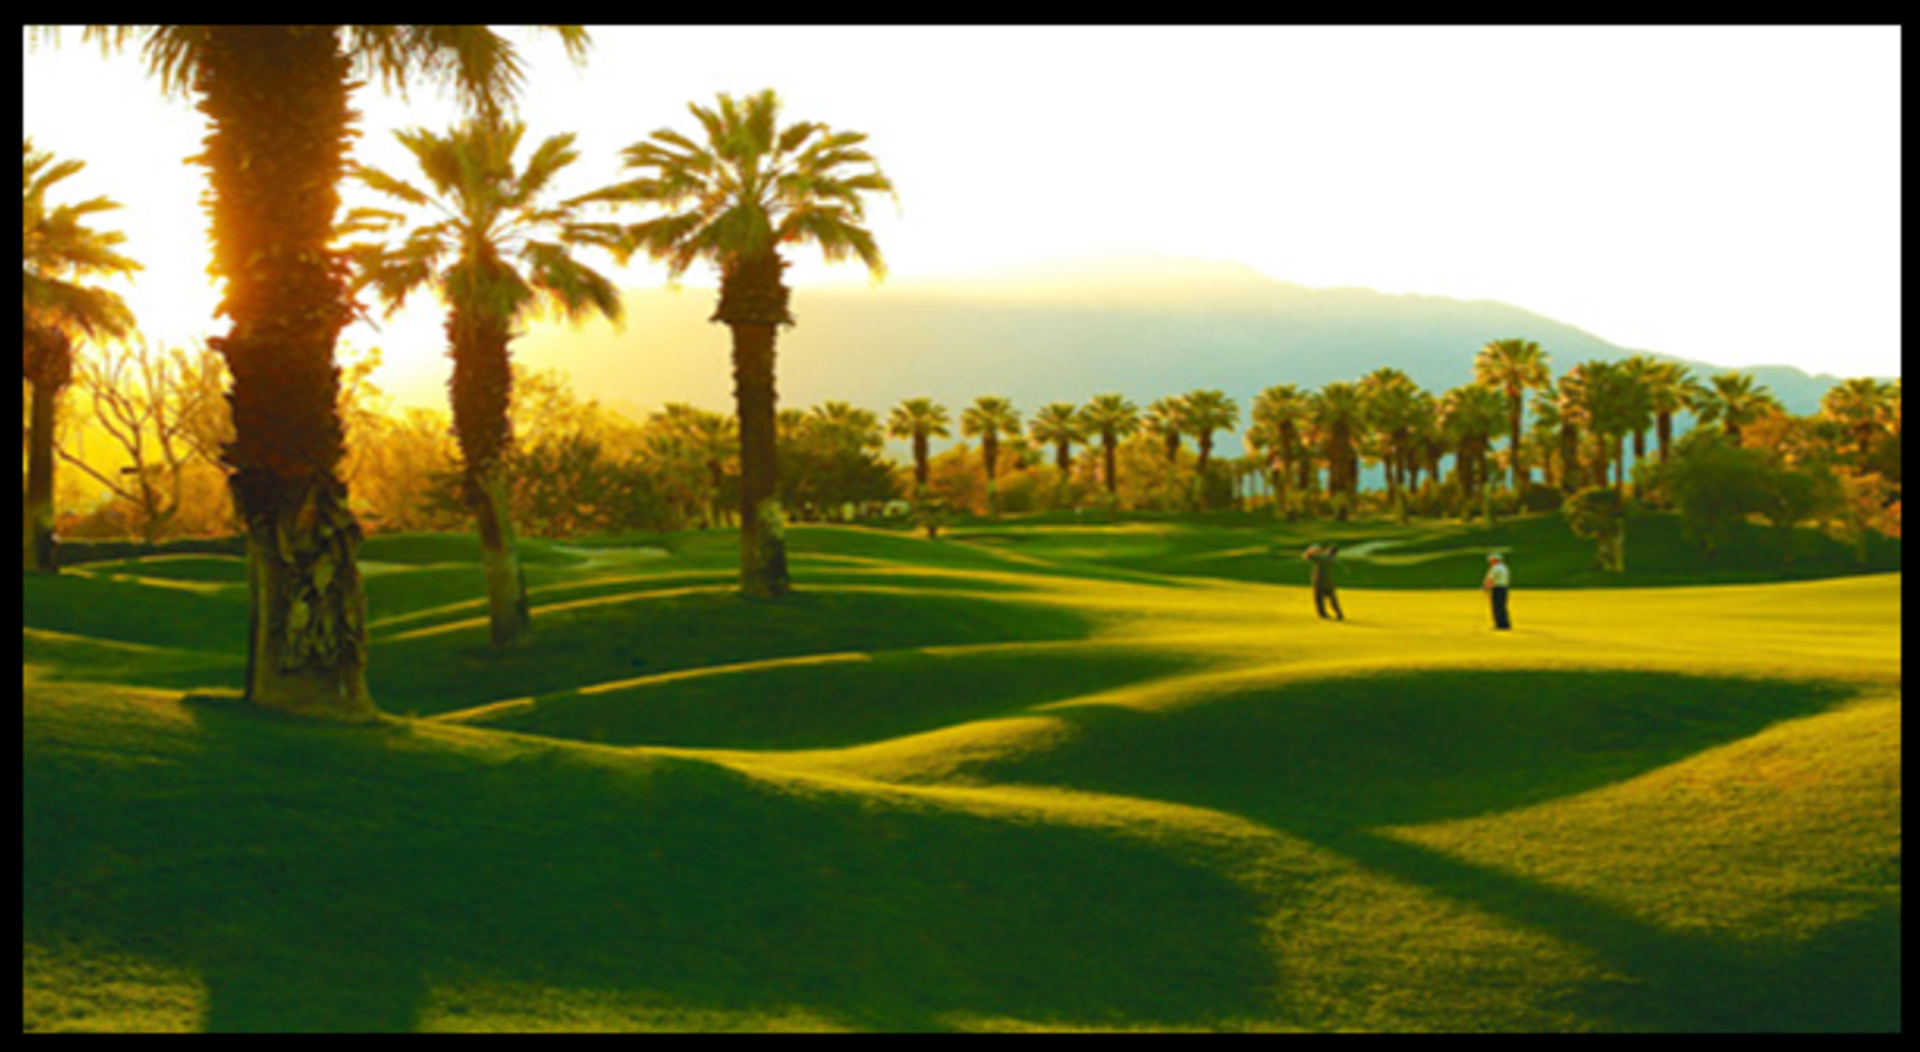 New Trilogy Home for Sale – One of the Best 55+ Golf Communities in La Quinta, CA